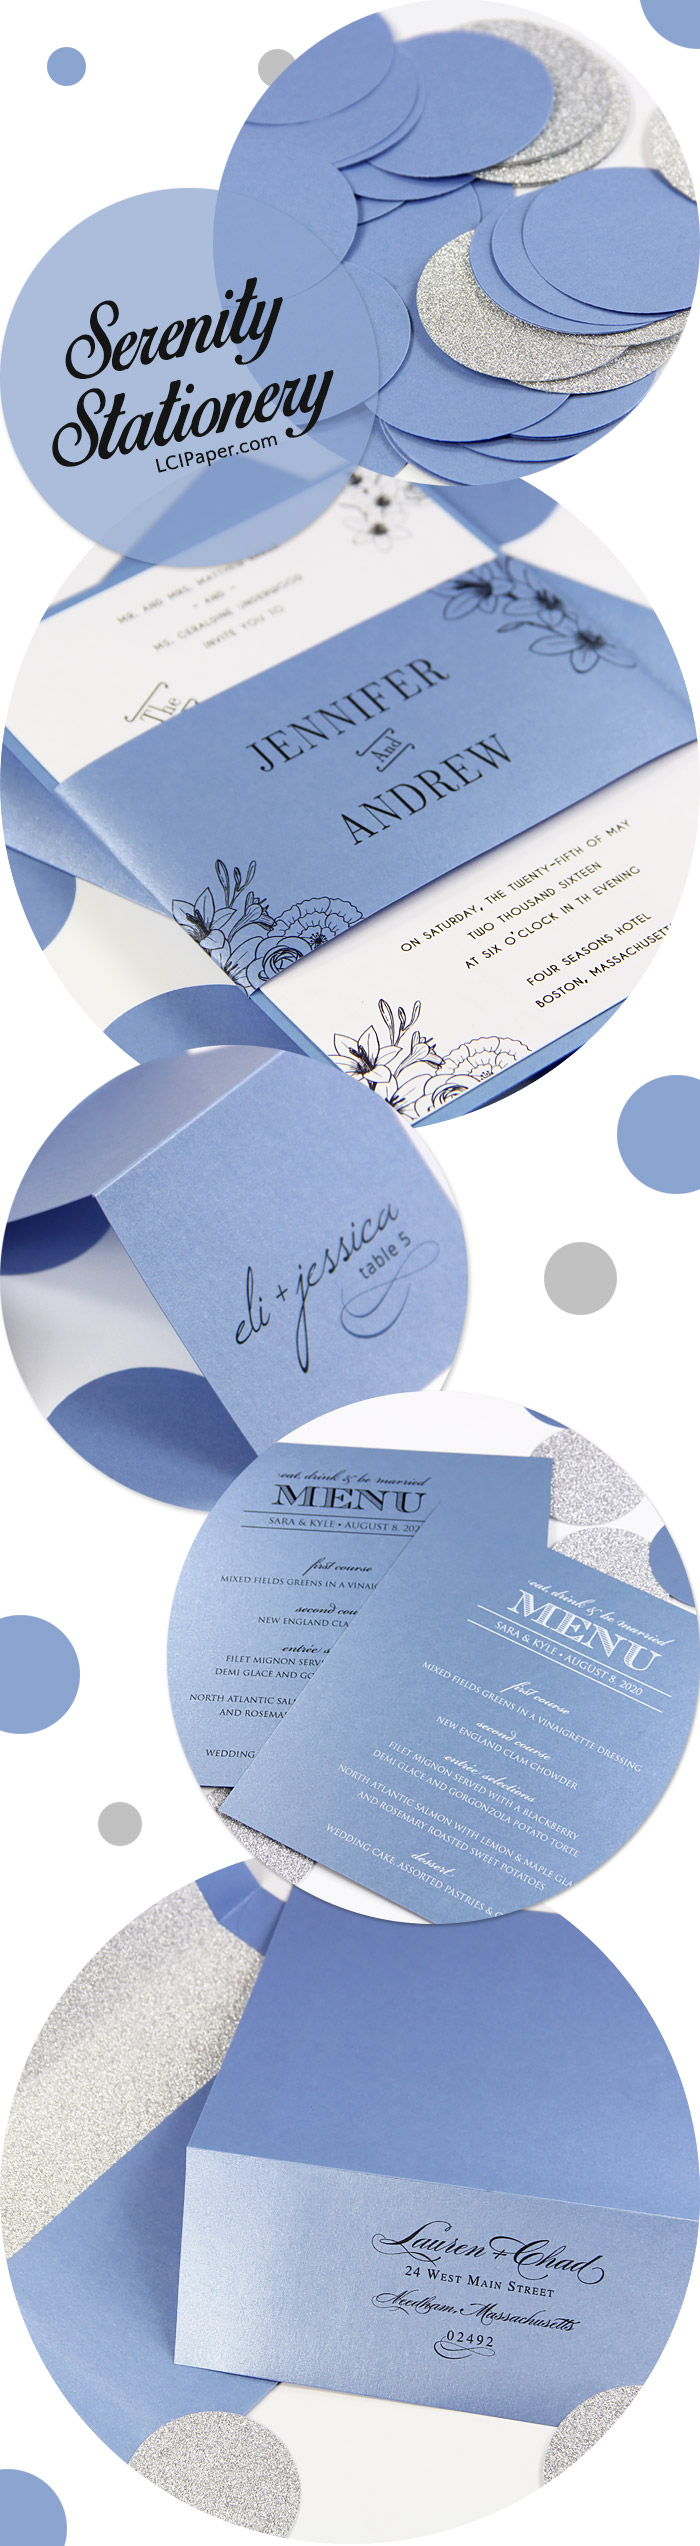 Serenity spring wedding stationery collage. Stardream Vista a close match to Serenity spring 2016 Pantone color.